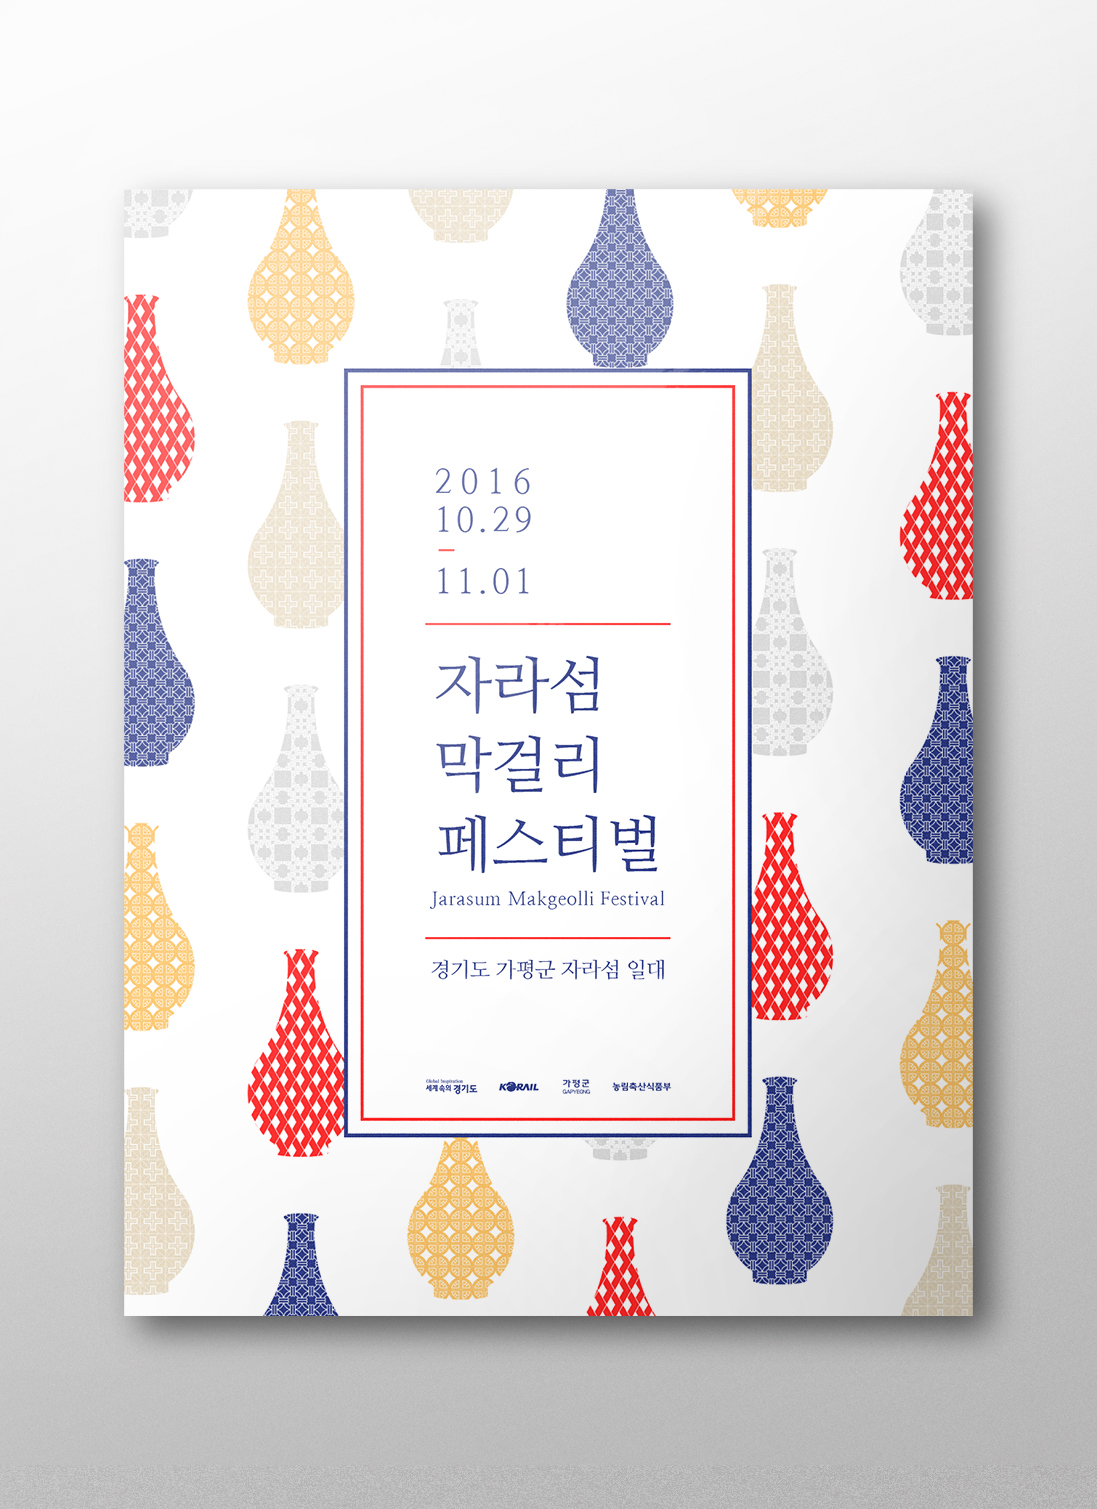 Korea tranditional graphic art work on Behance